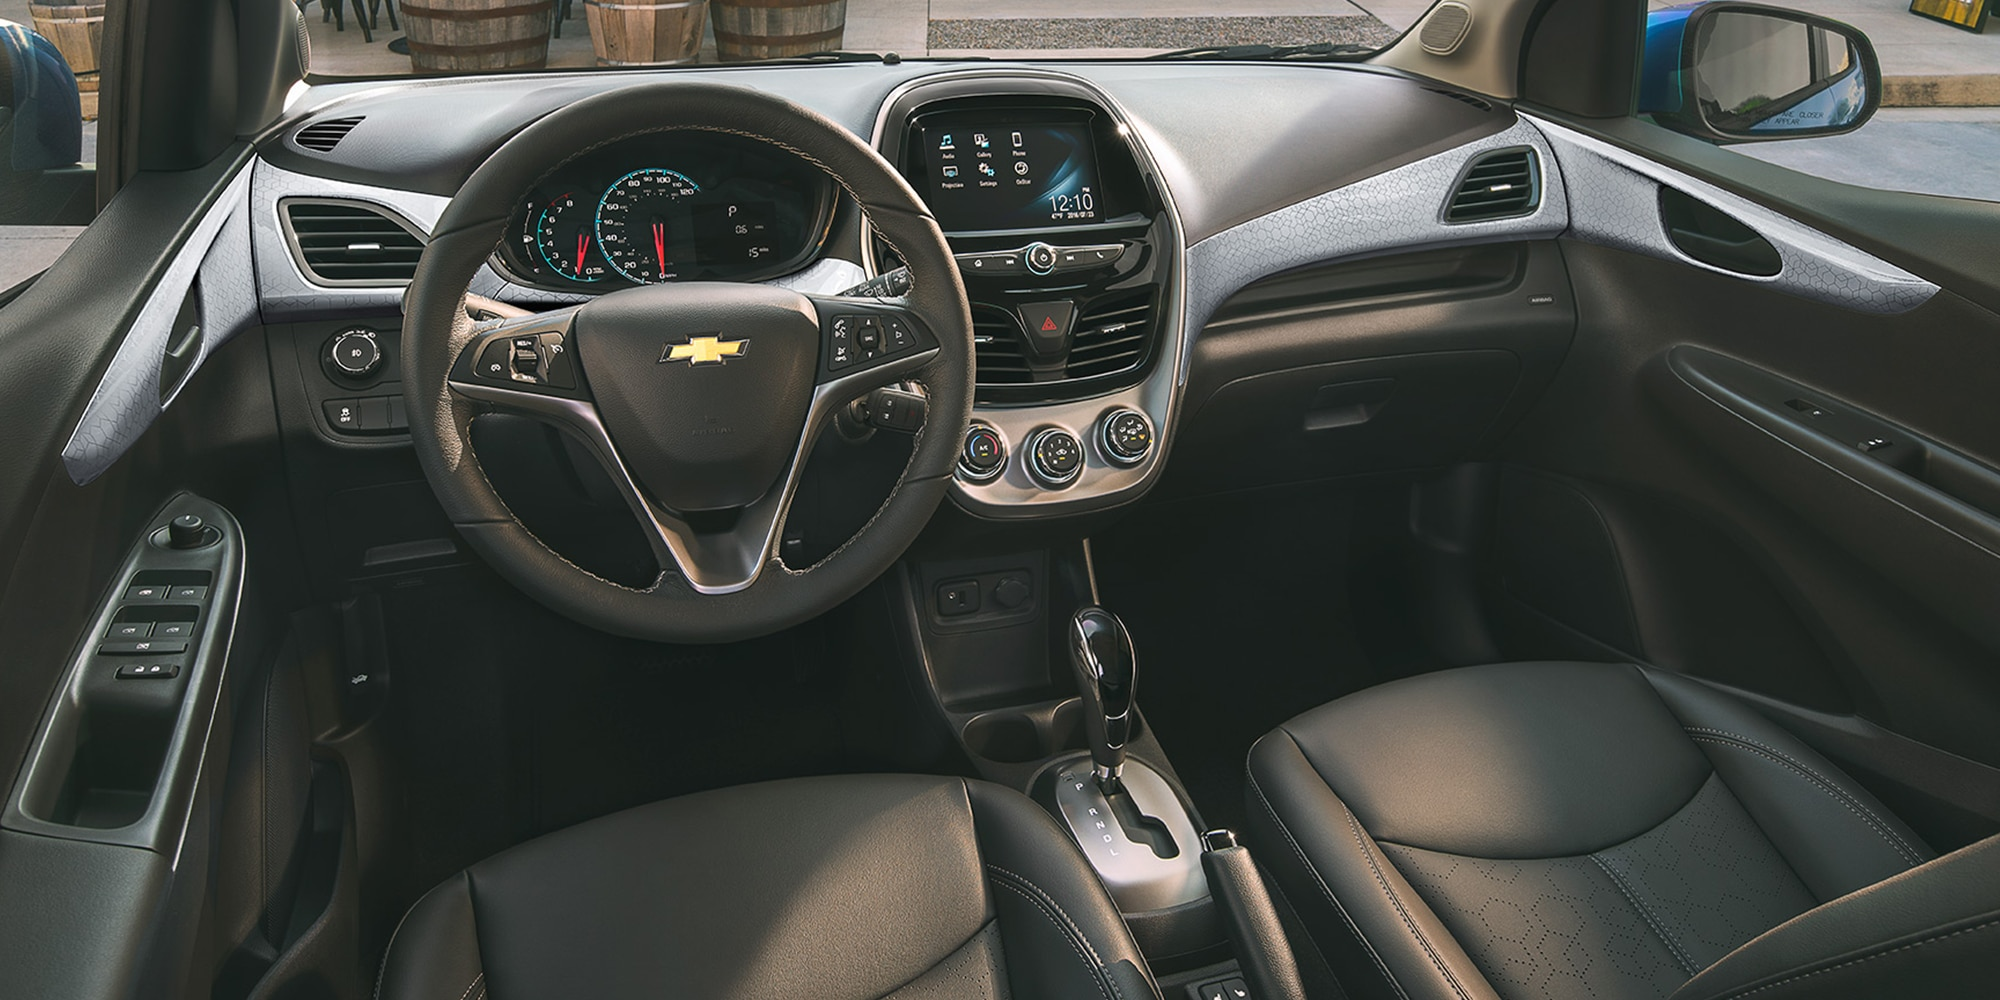 New Chevrolet Spark in Hinesville, GA